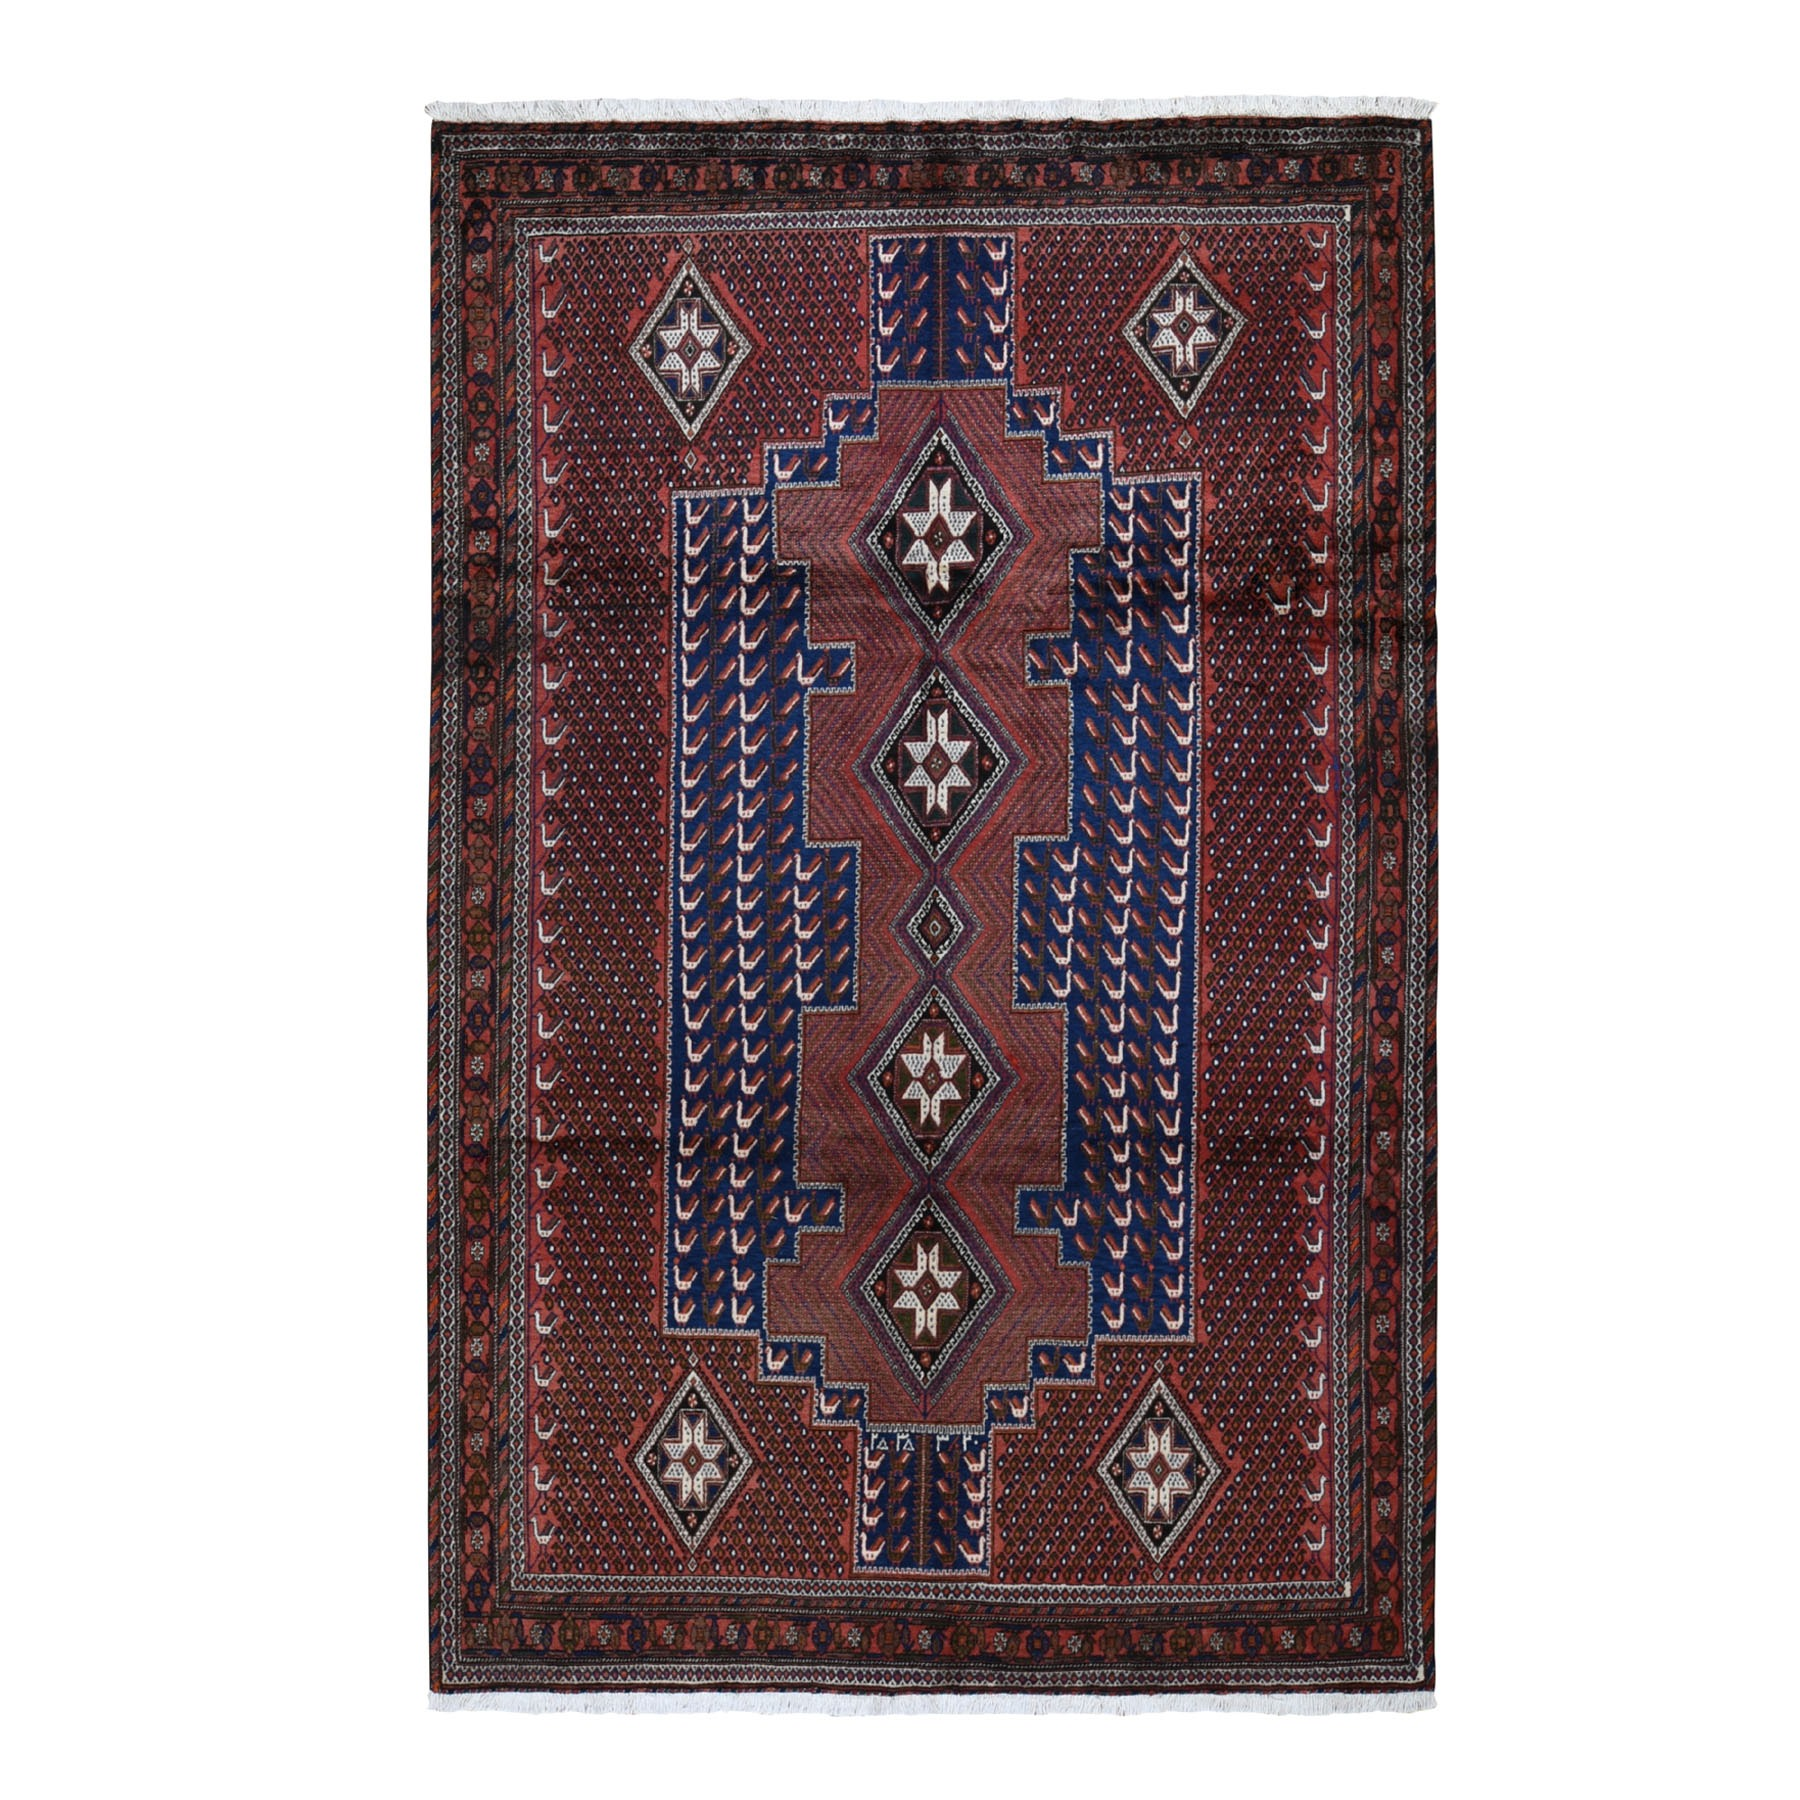 "6'8""x10'5"" Red New Persian Senneh Pure Wool Peacock Design Full Pile Hand Woven Oriental Rug"